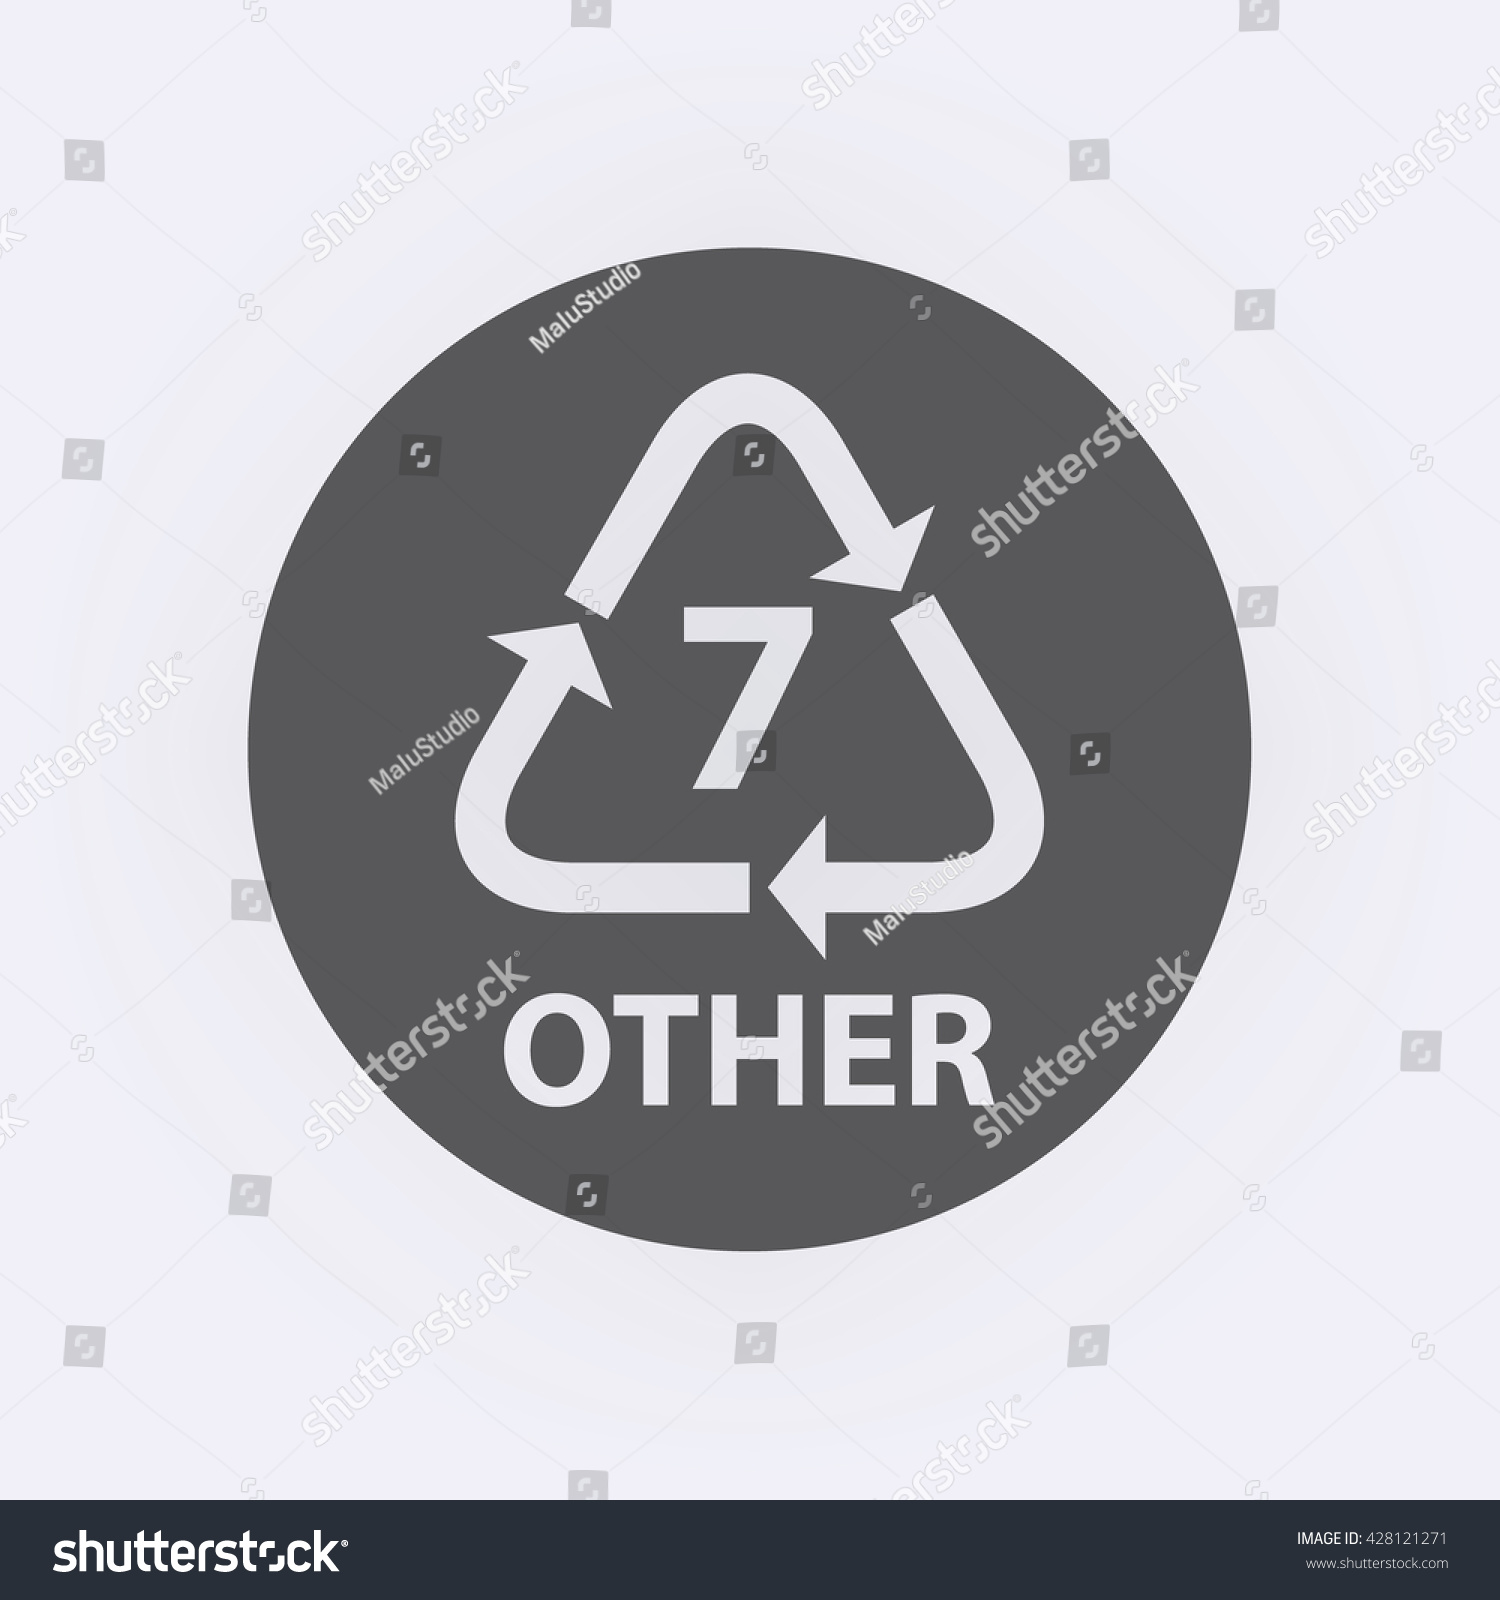 Plastic Recycling Symbol Other 7 Vector Stock Vector 428121271